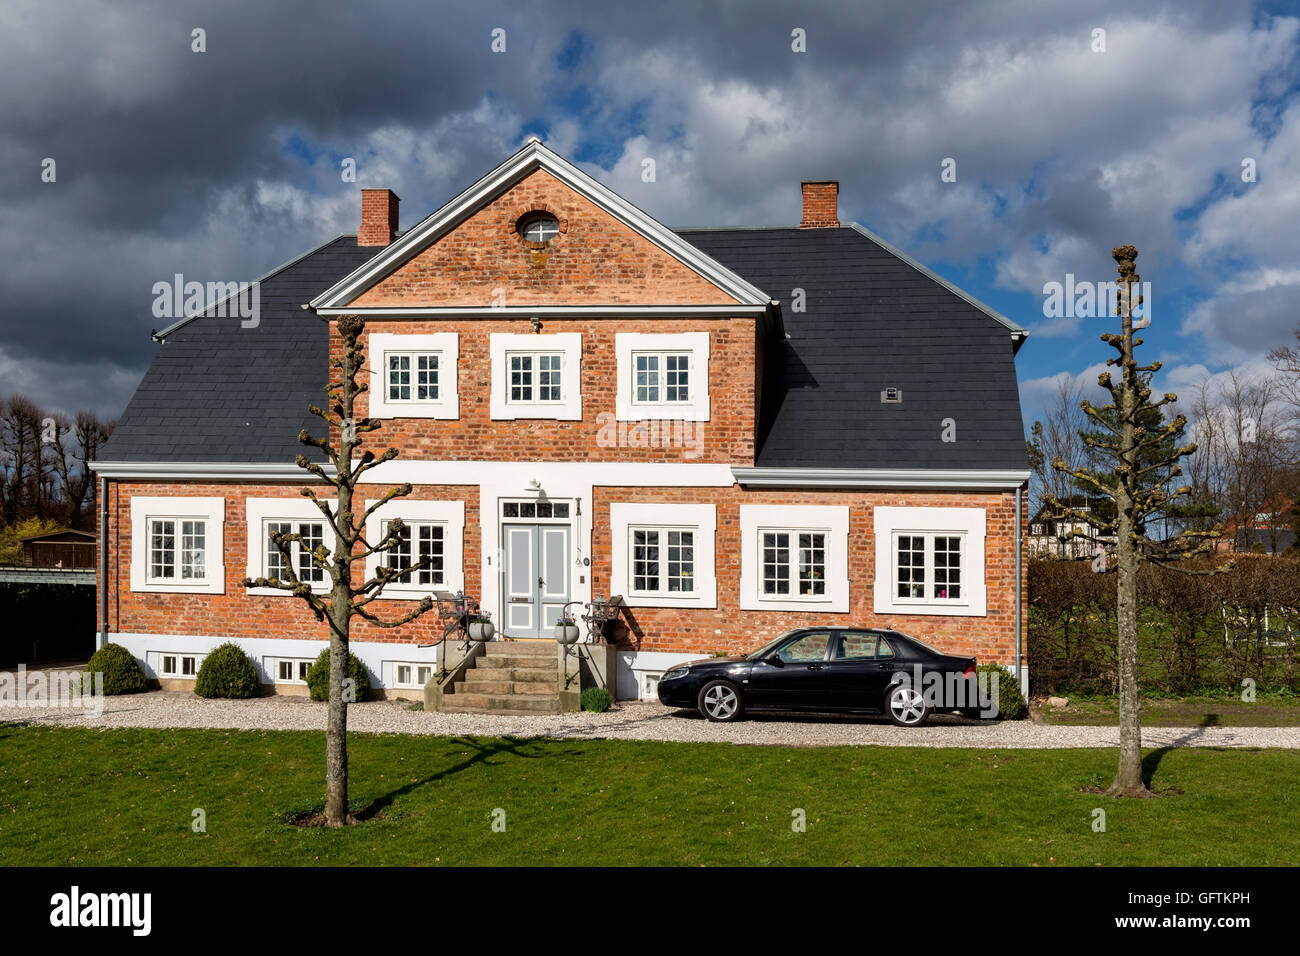 Typical old brick house in Denmark, Hillerød - Stock Image